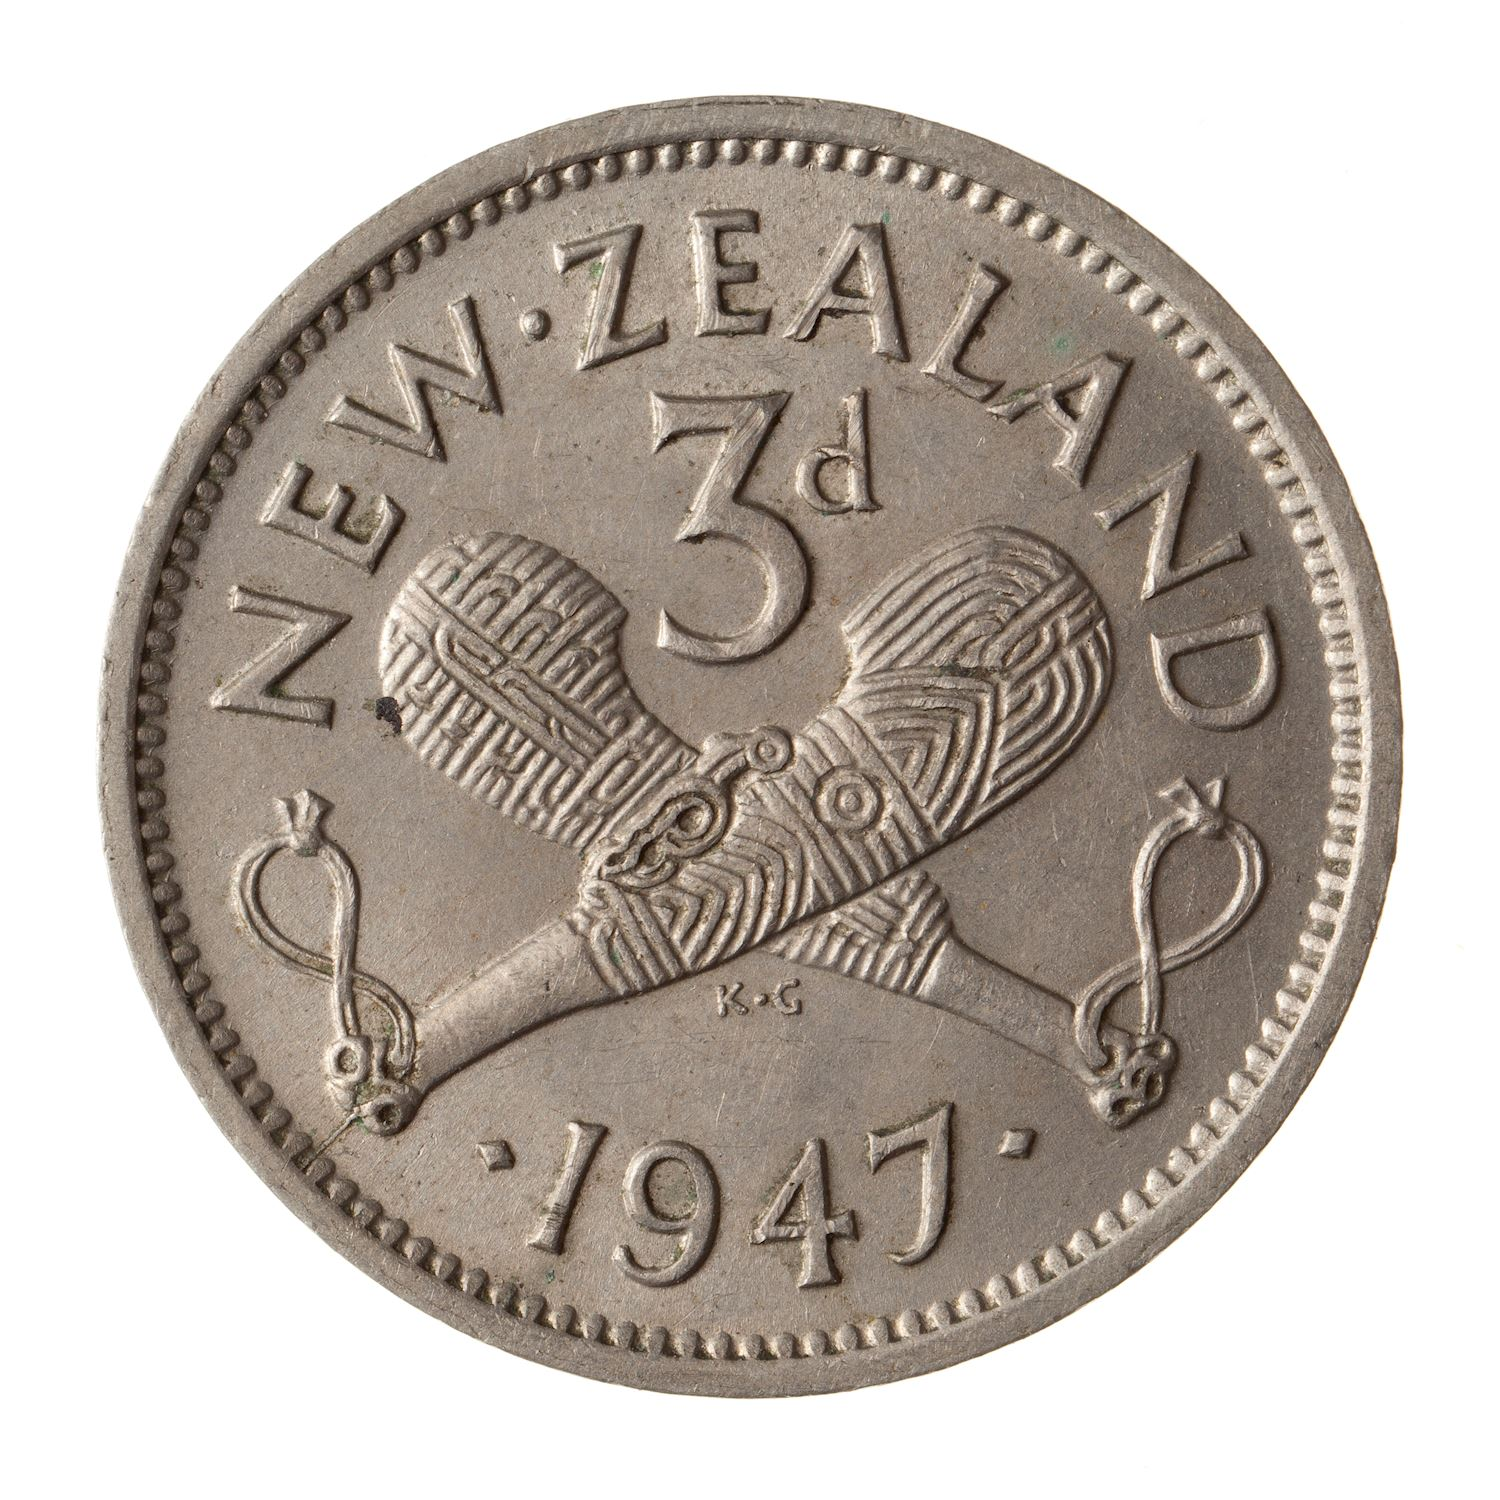 Threepence 1947: Photo Coin - 3 Pence, New Zealand, 1947